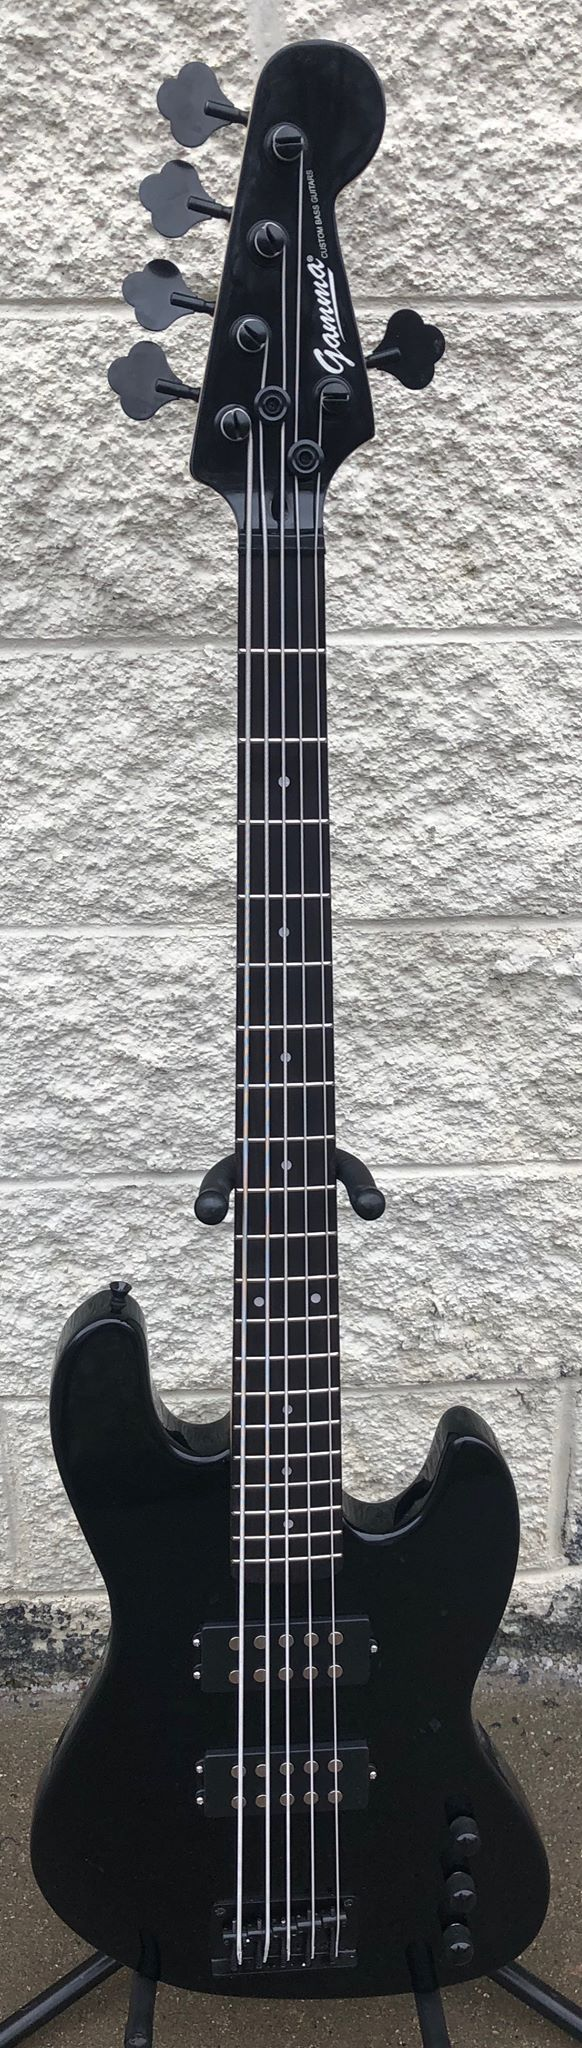 GAMMA [SOLD] Custom H519-03, Kappa Model 5 String, Gloss Ebony